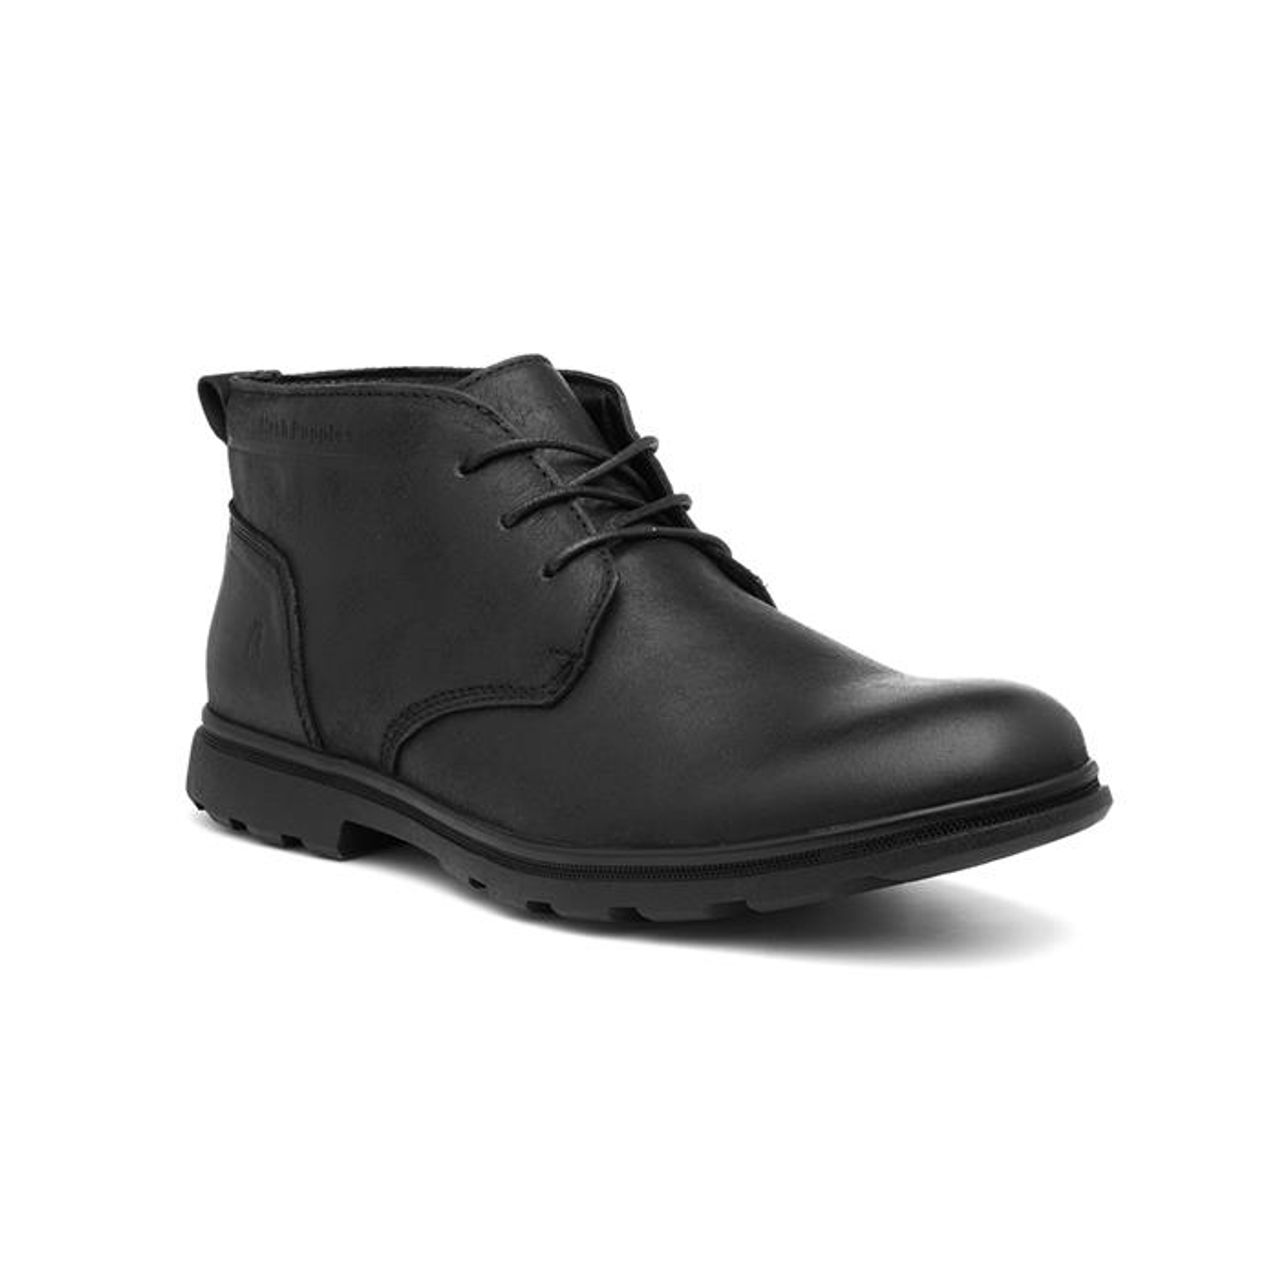 Hush Puppies Mens Tyson Lace Up Leather Ankle Chukka Boots